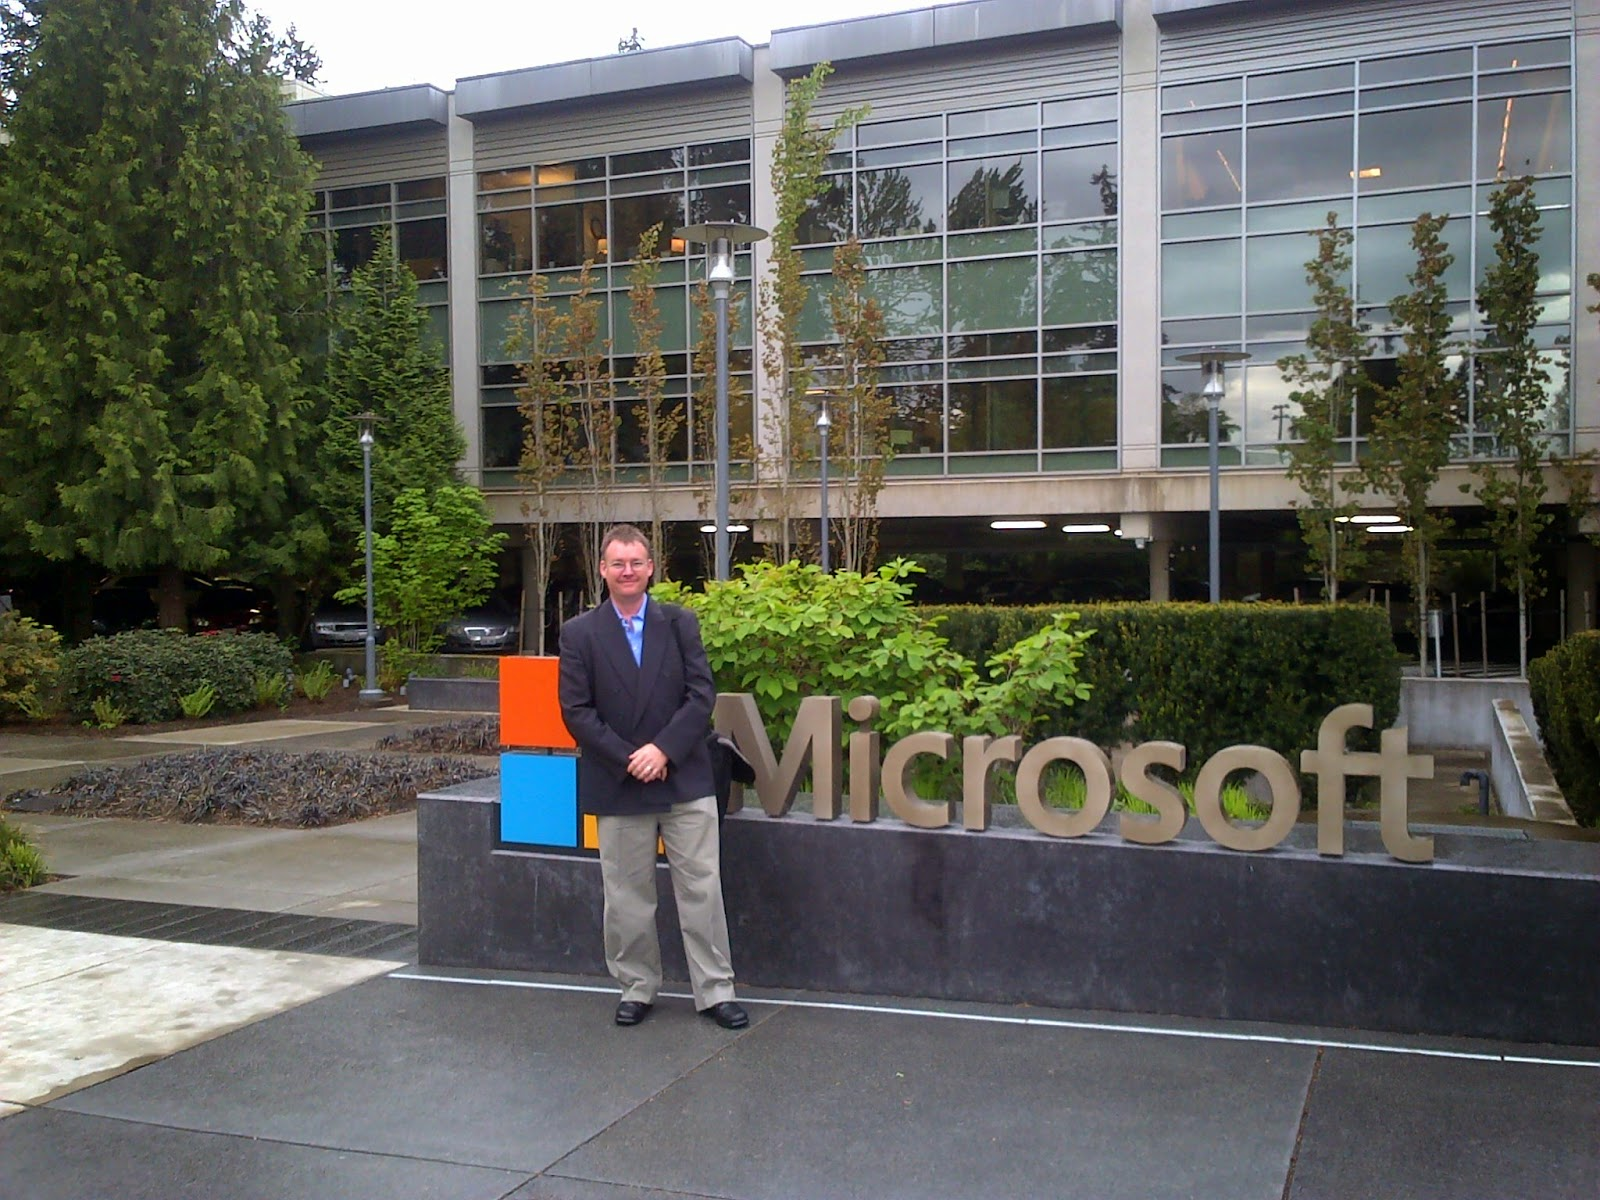 Building 92 microsoft store - I Was Amazed At The Size Of The Microsoft Campus It Is Really Massive